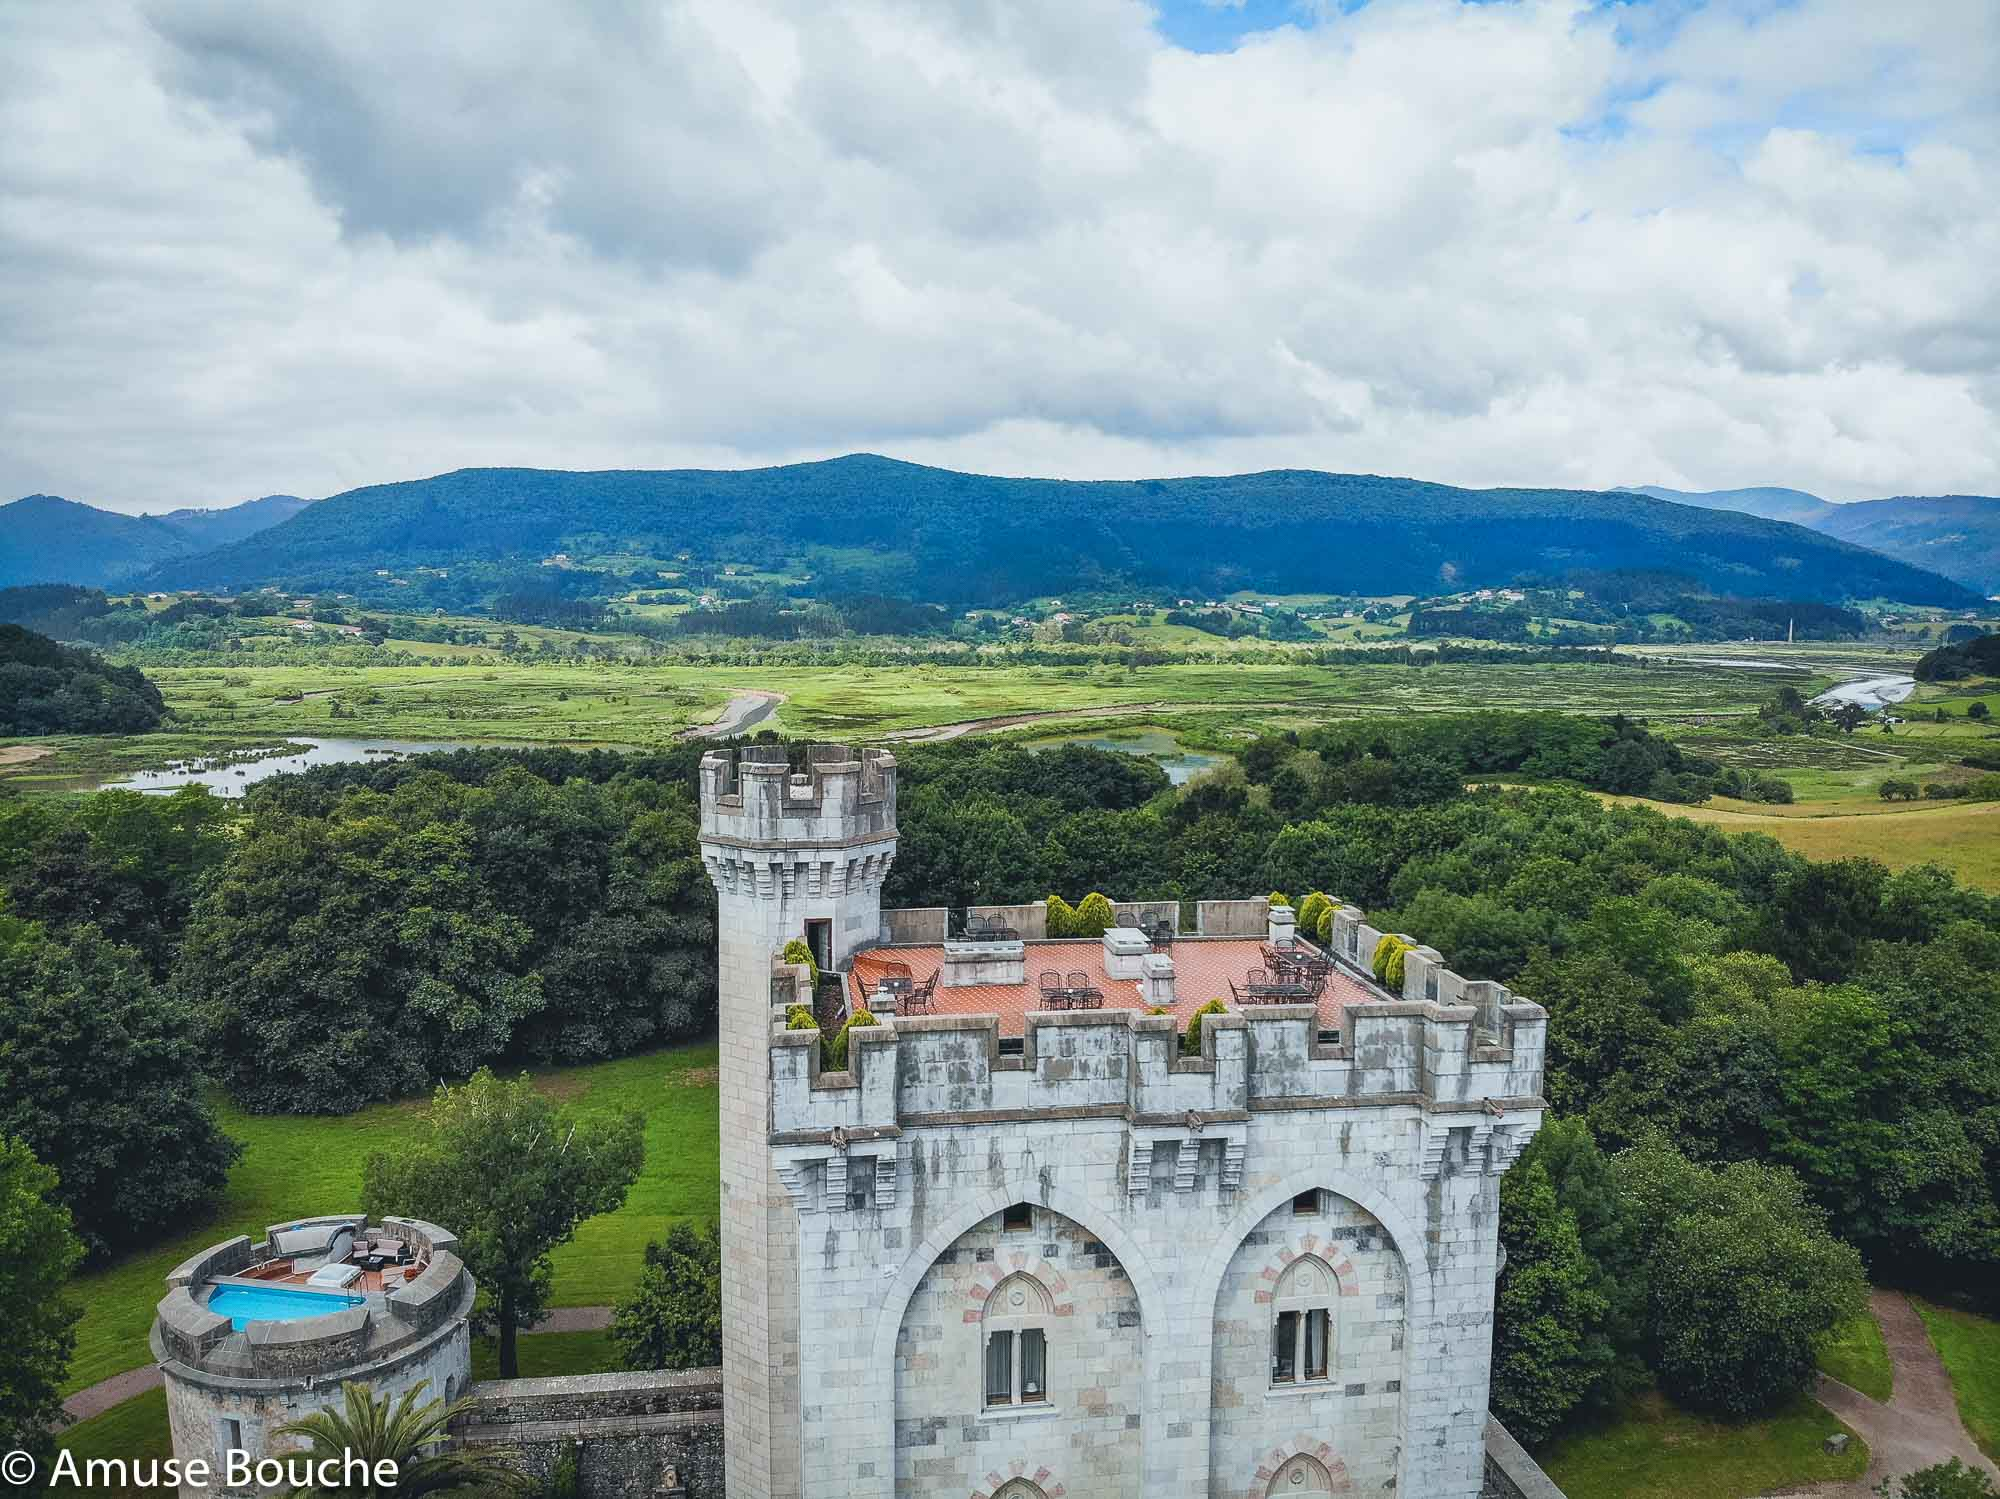 Țara Bascilor Castillo de Arteaga aerial side view